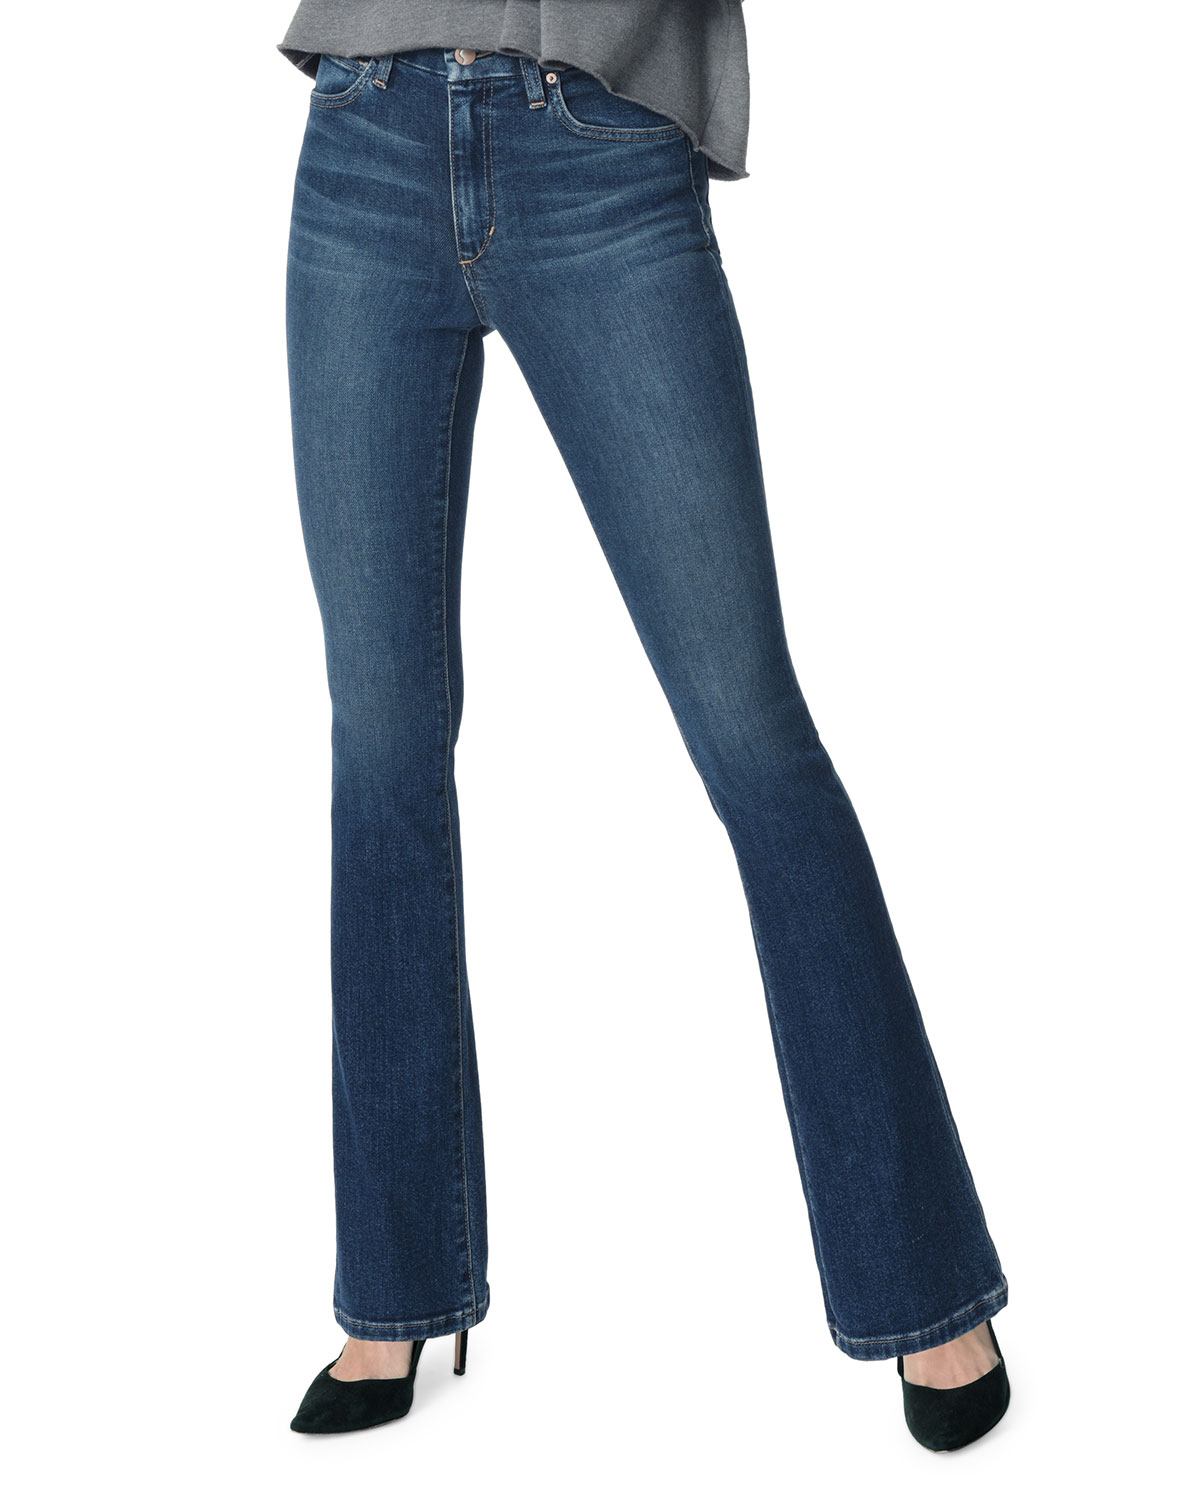 JOE'S JEANS The High-Rise Honey Boot-Cut Jeans in Blue